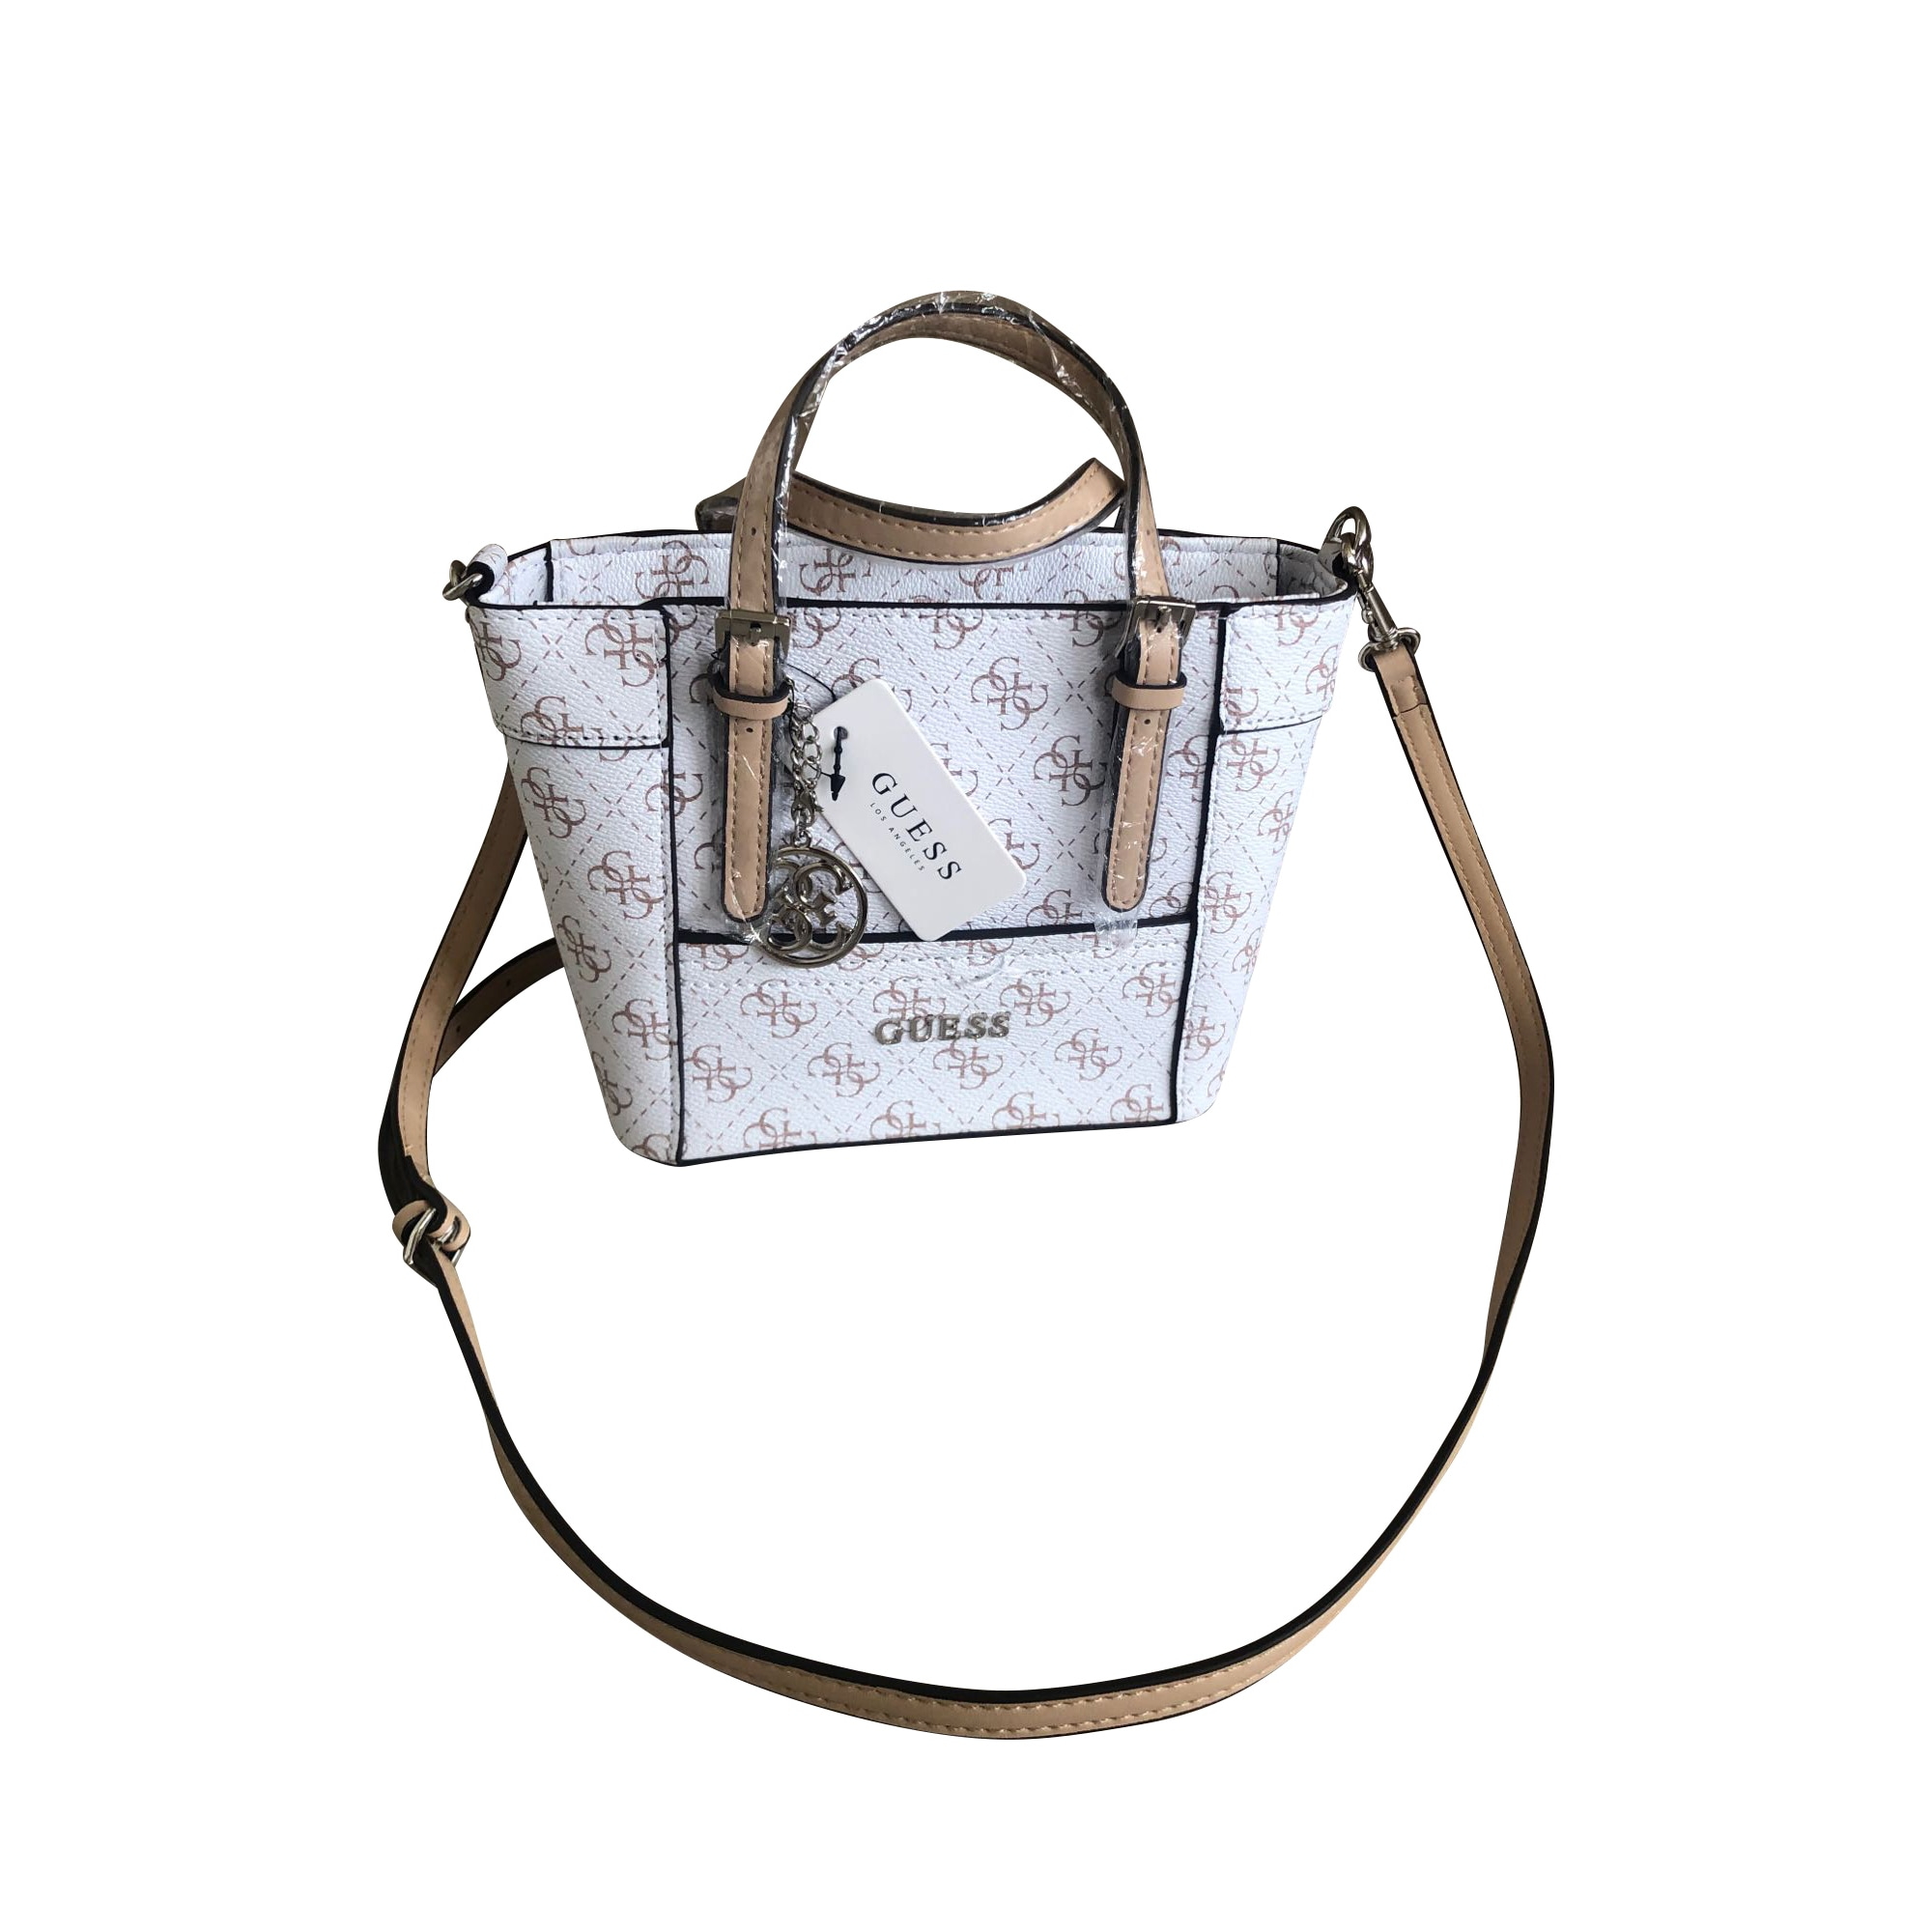 Leather Shoulder Bag GUESS White, off-white, ecru